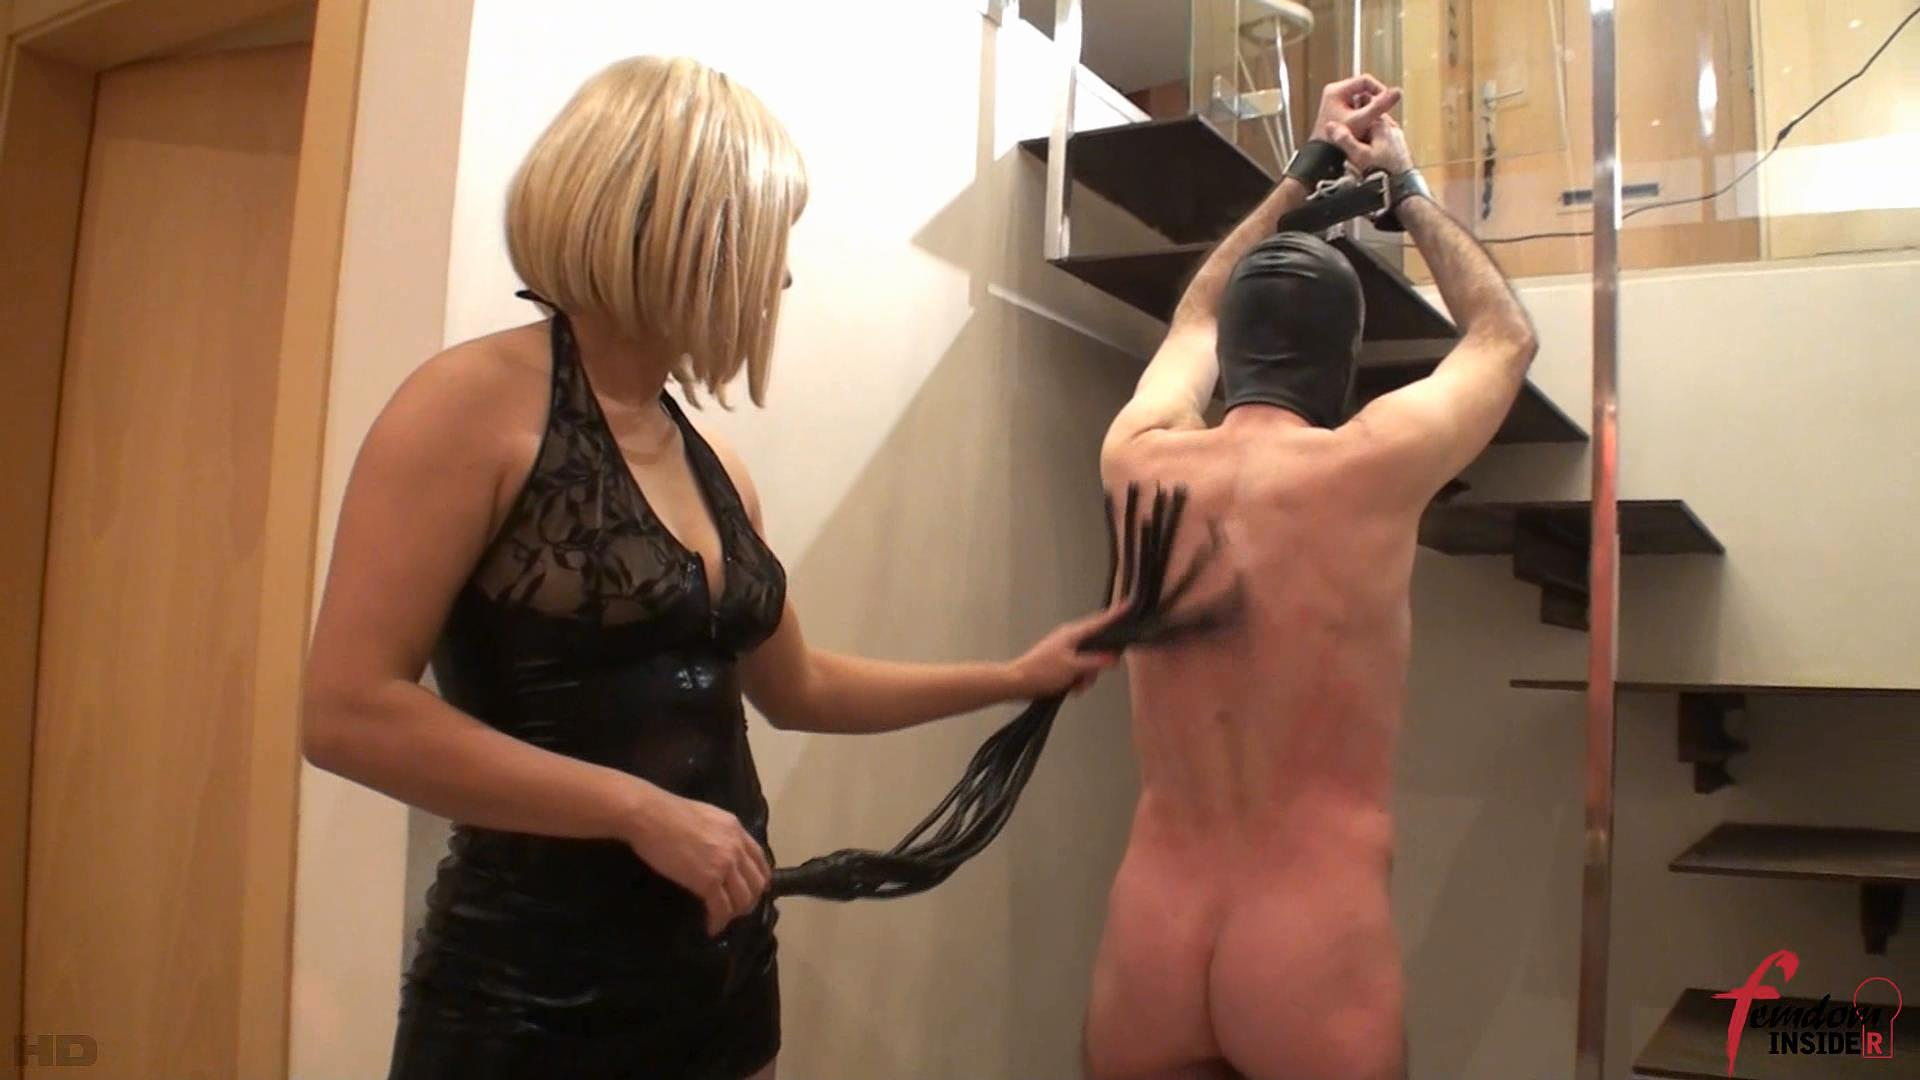 Mistress Karen In Scene: Meat For Whip - FEMDOMINSIDER - FULL HD/1080p/WMV